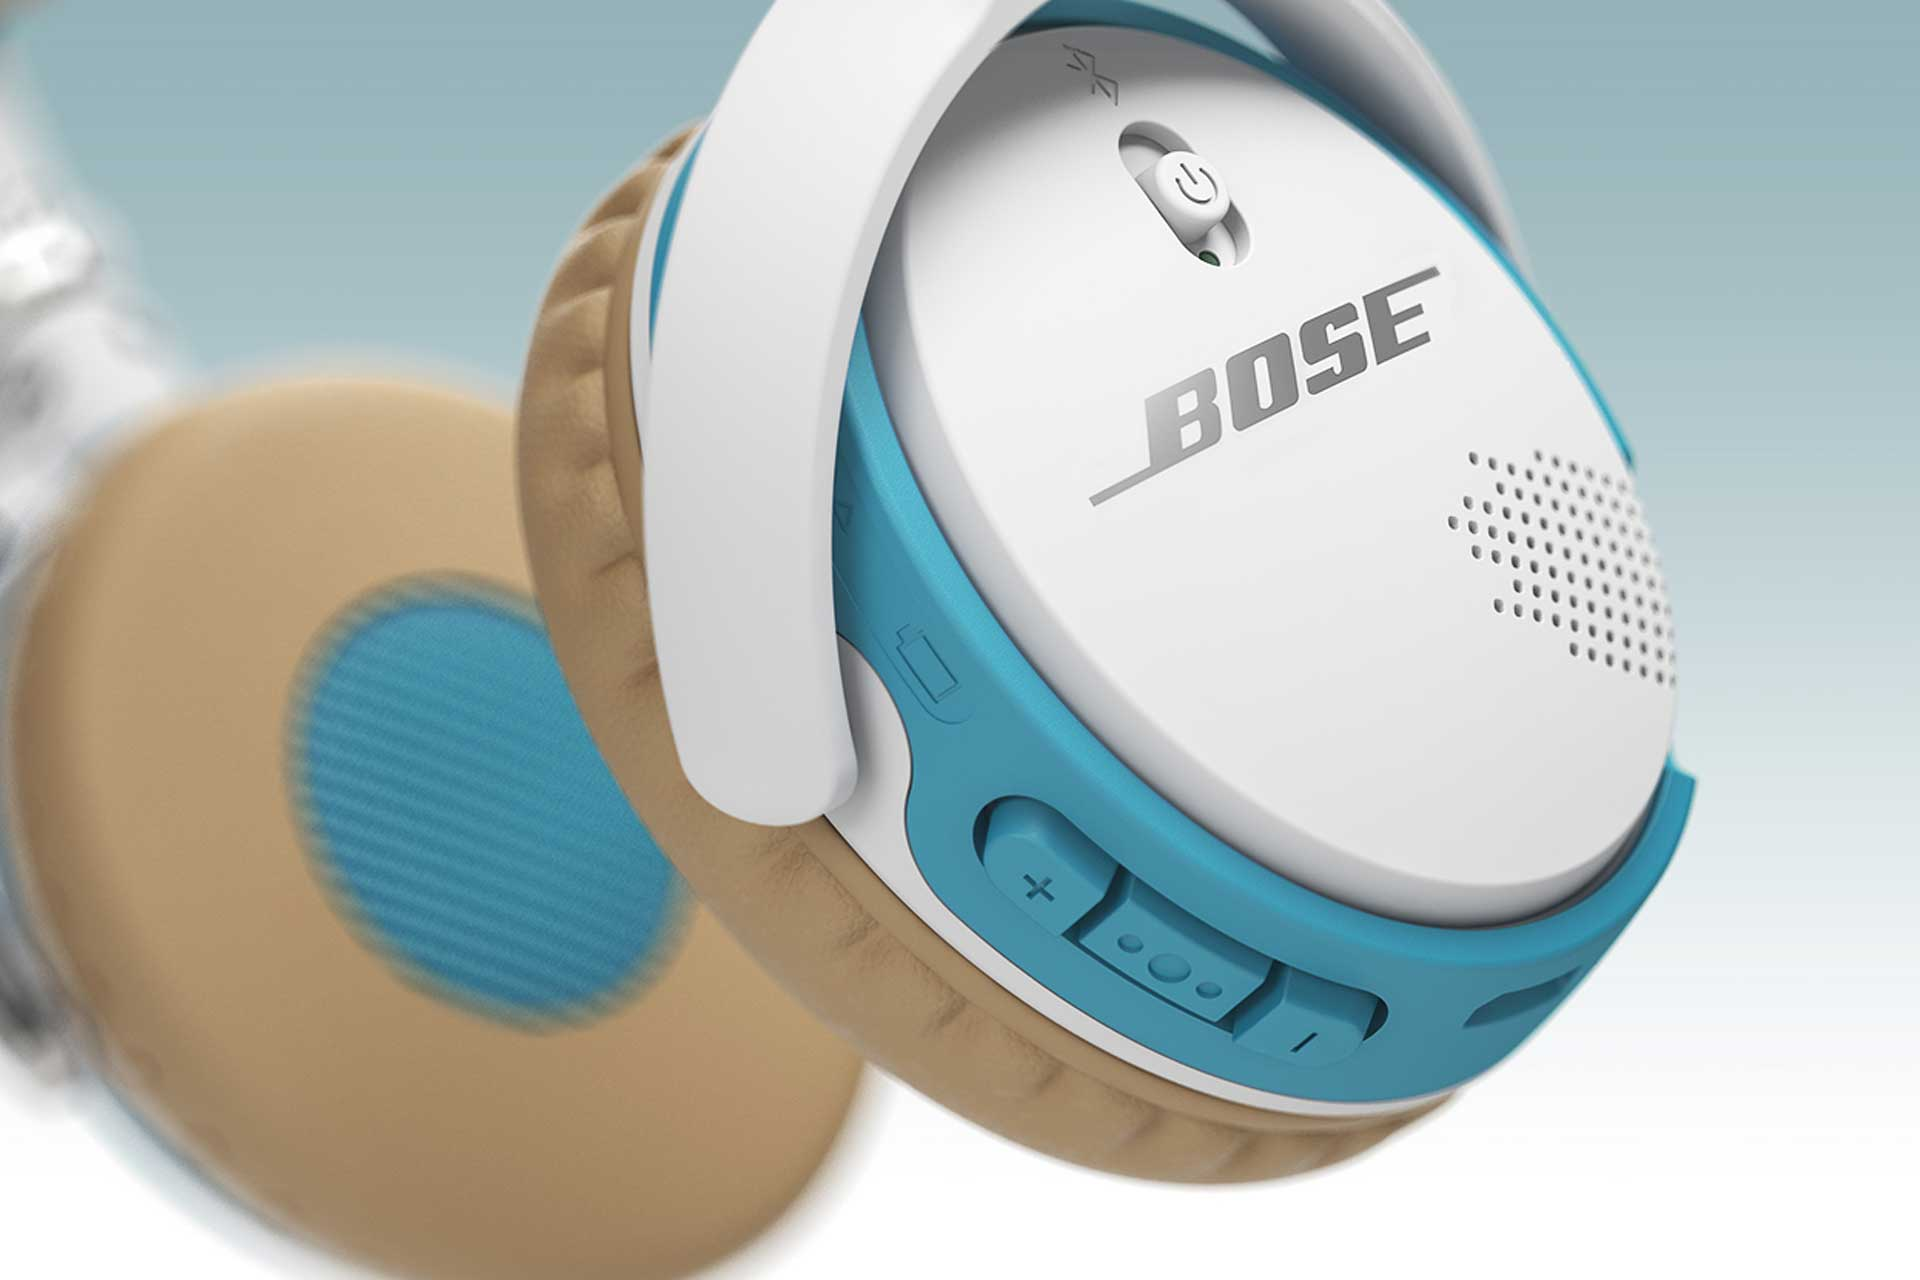 Detailed perfect 3D images of blue, white, and tan BOSE headphones